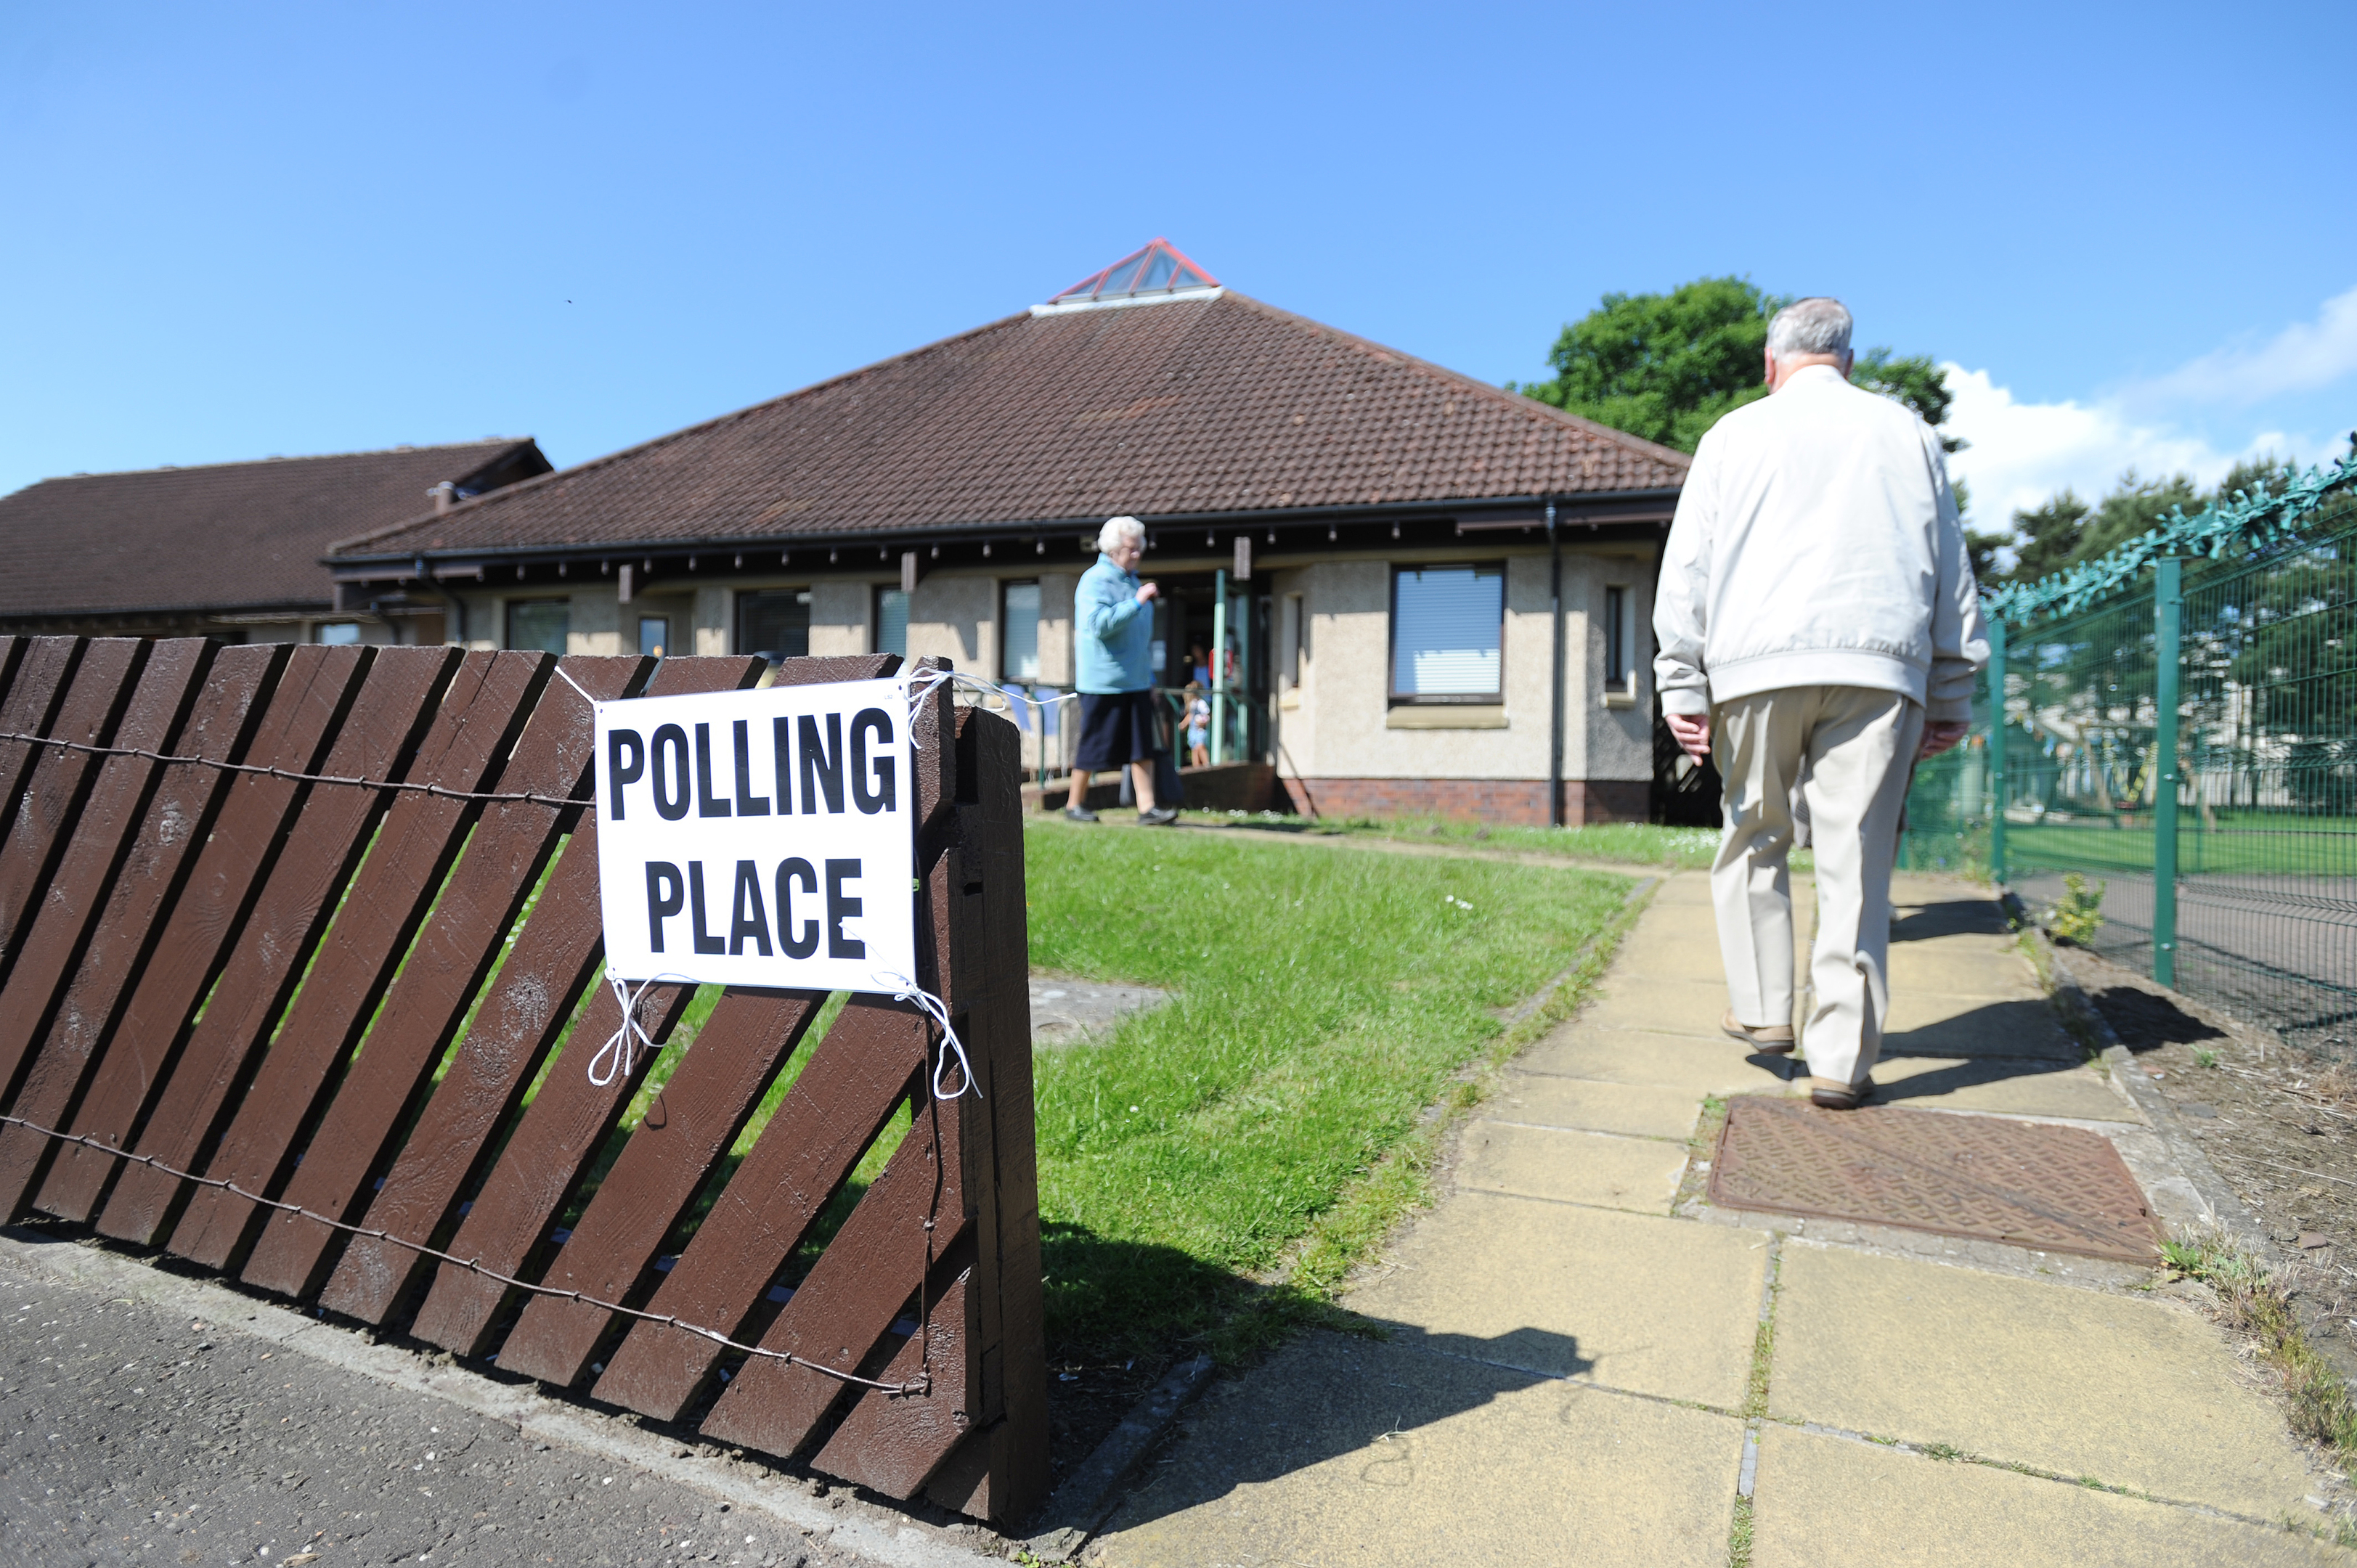 Lawton Road Sheltered Housing Complex, which was one of the polling places in Dundee.